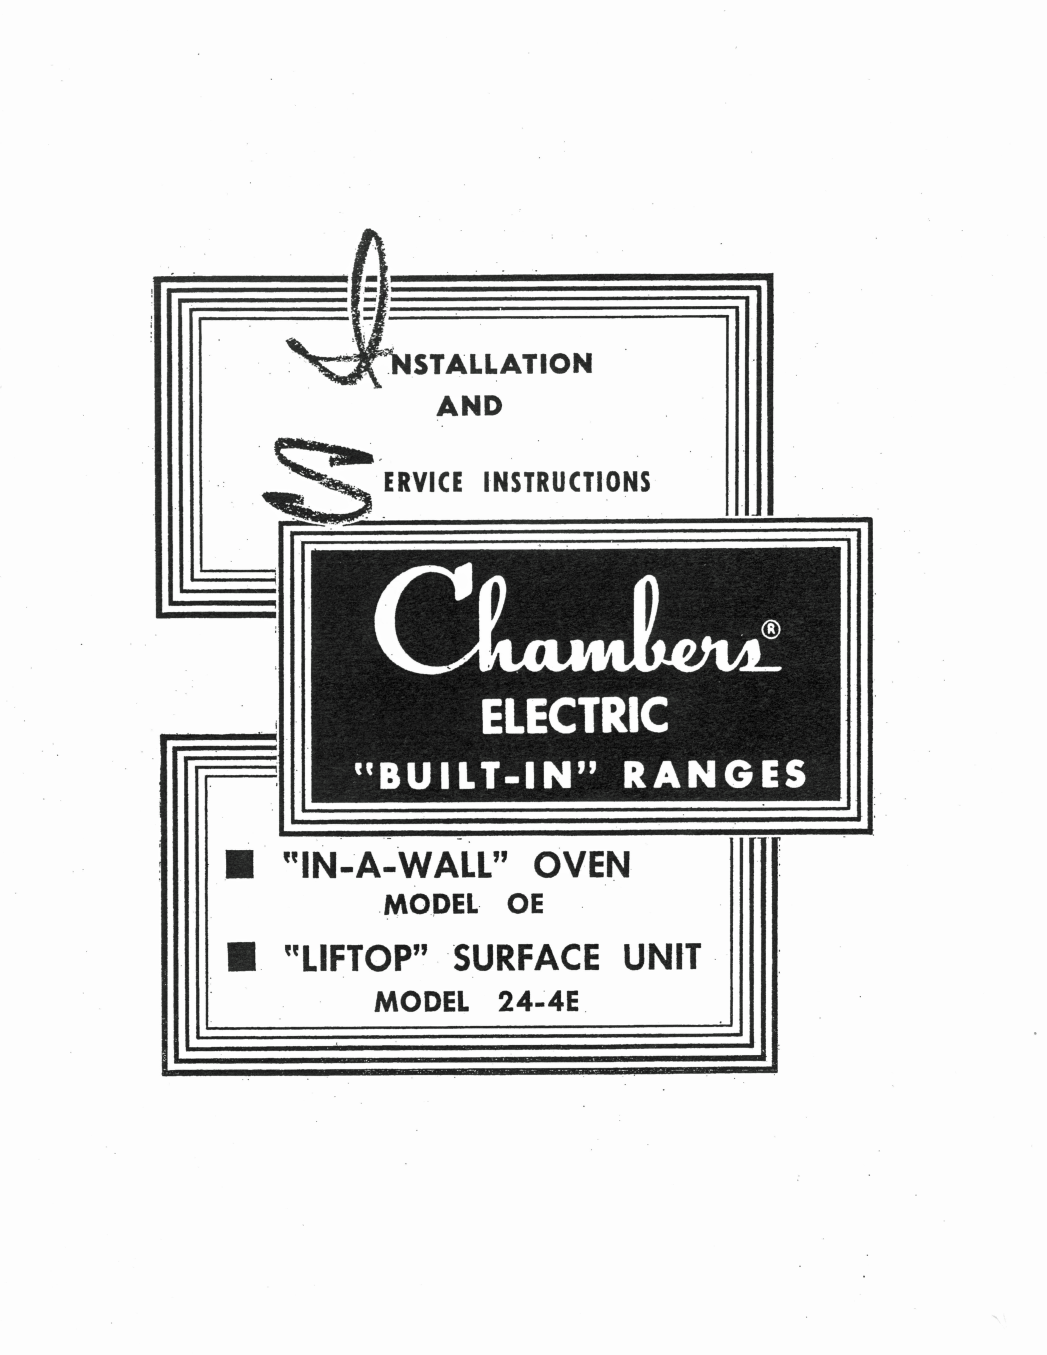 Available Literature For Your Chambers 1950 Gas Stove Wiring Diagram Instruction Manual Service Instructions Electric Built In Units Contains On Proper Operation Calibration Cleaning And Care Of